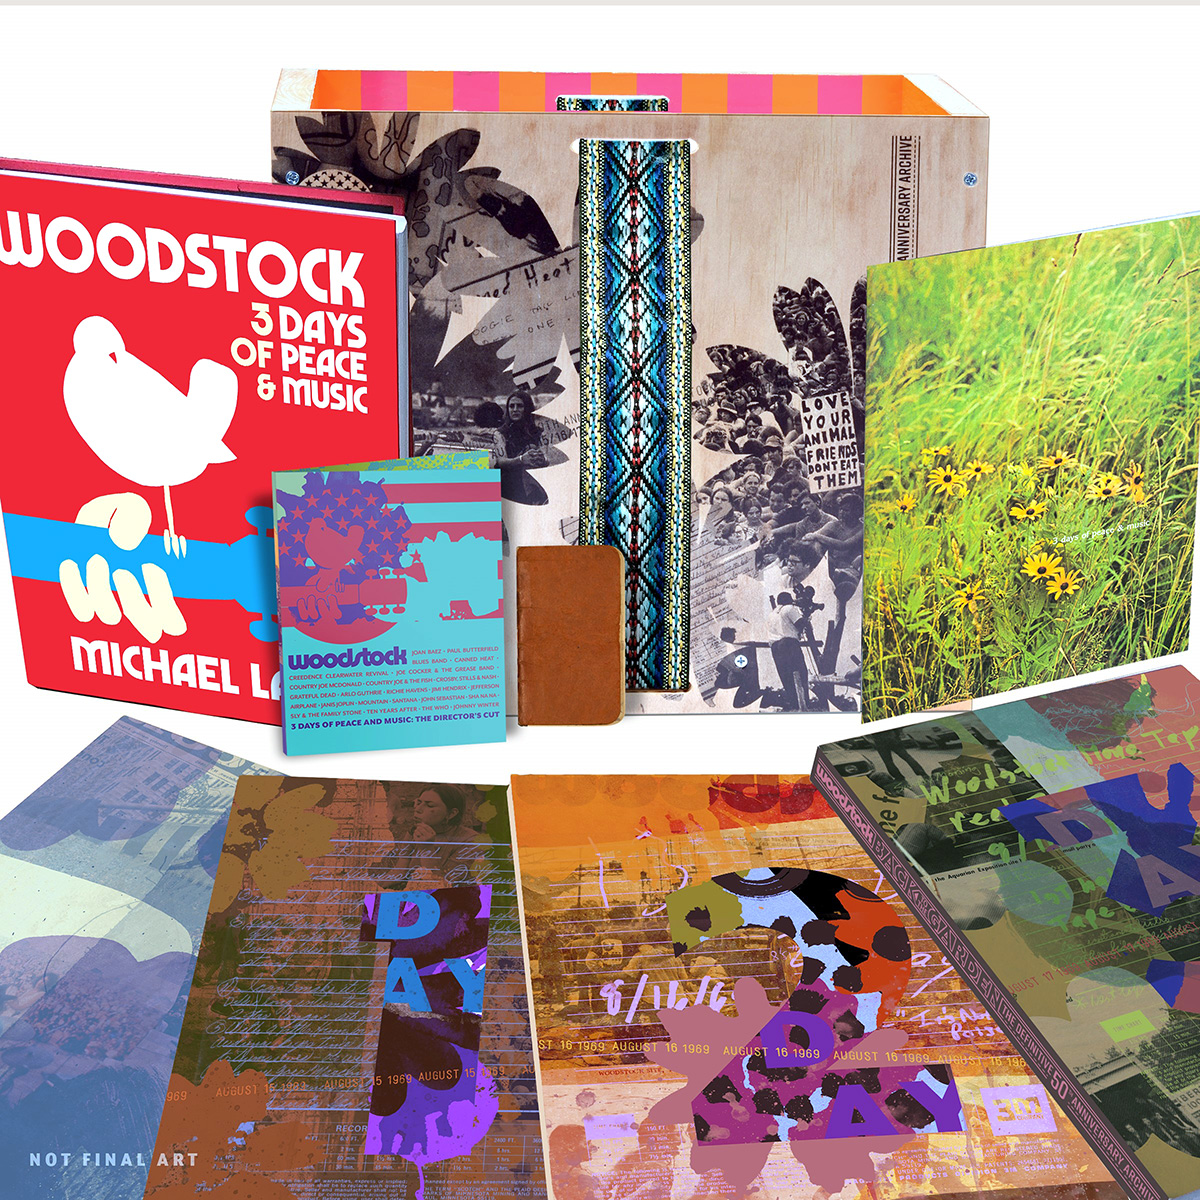 Woodstock - The Definitive 50th Anniversary Archive (38CD + Blu-Ray)